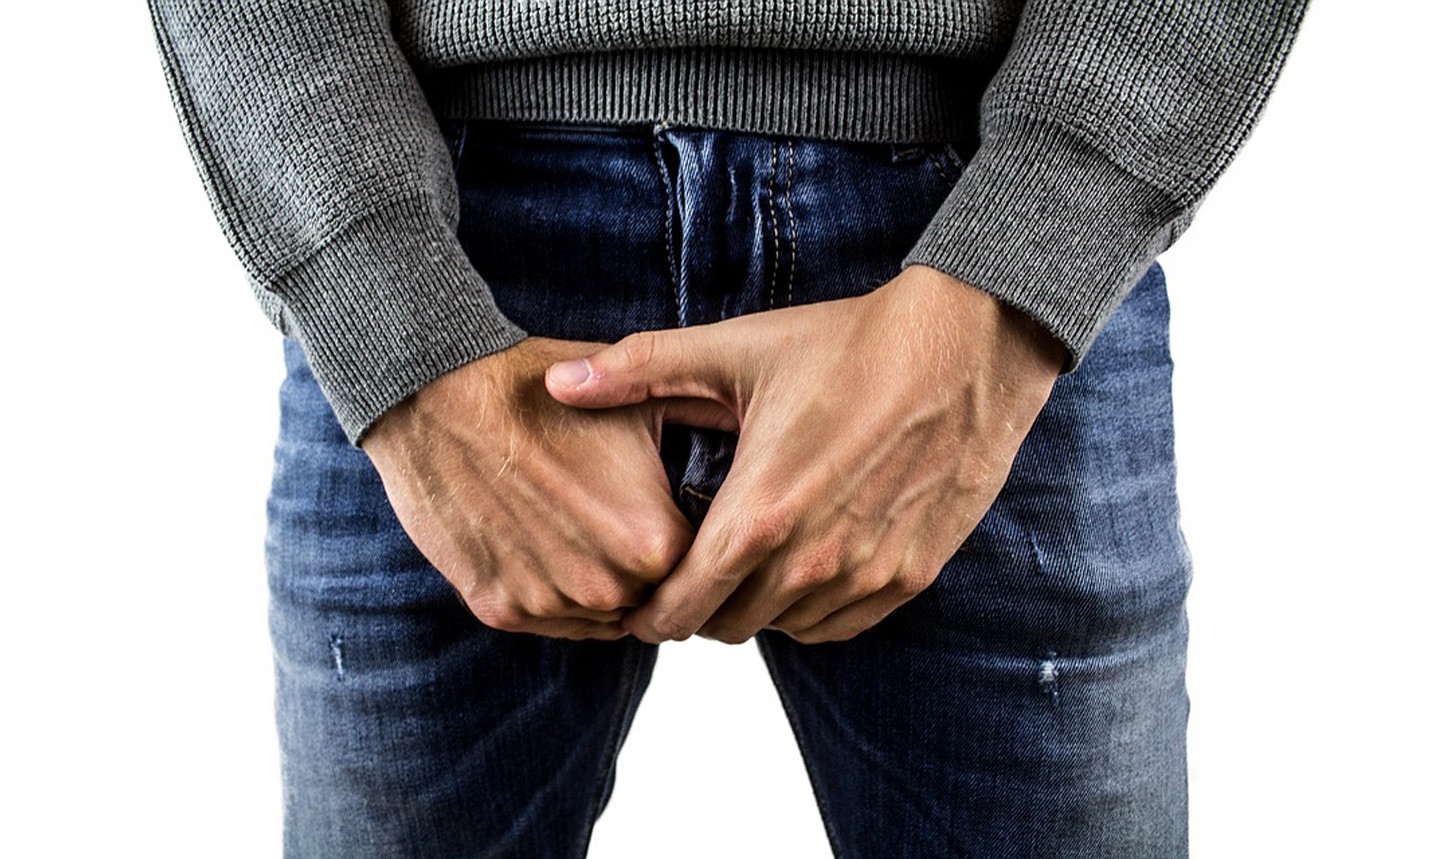 Erectile Dysfunction: Causes, Diagnosis, and Treatment | HealthSoul